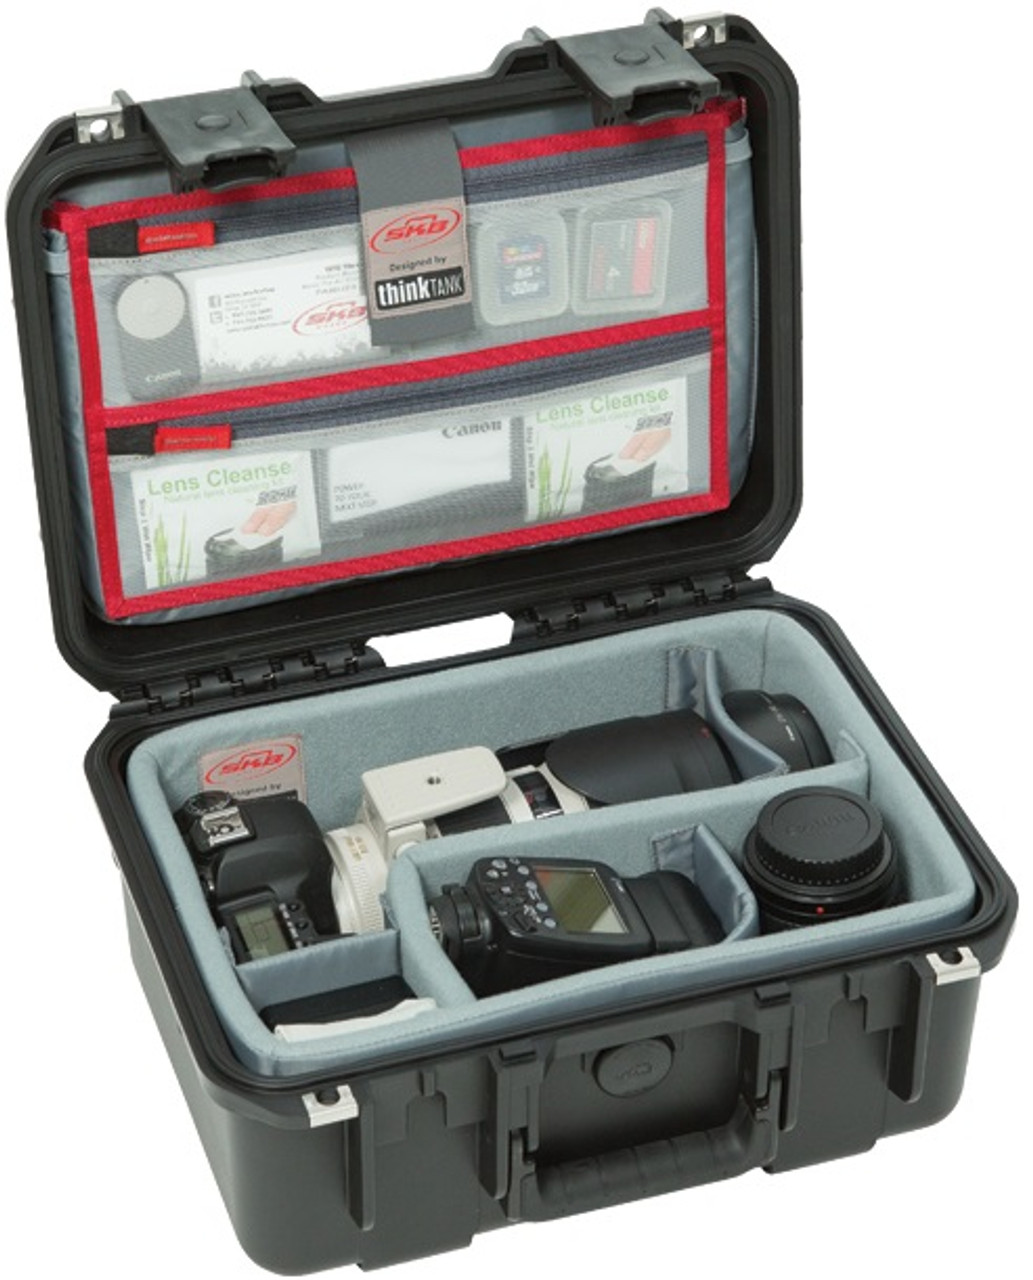 SKB iSeries 1309-6 Case with Think Tank Designed Photo Dividers and Lid Organizer